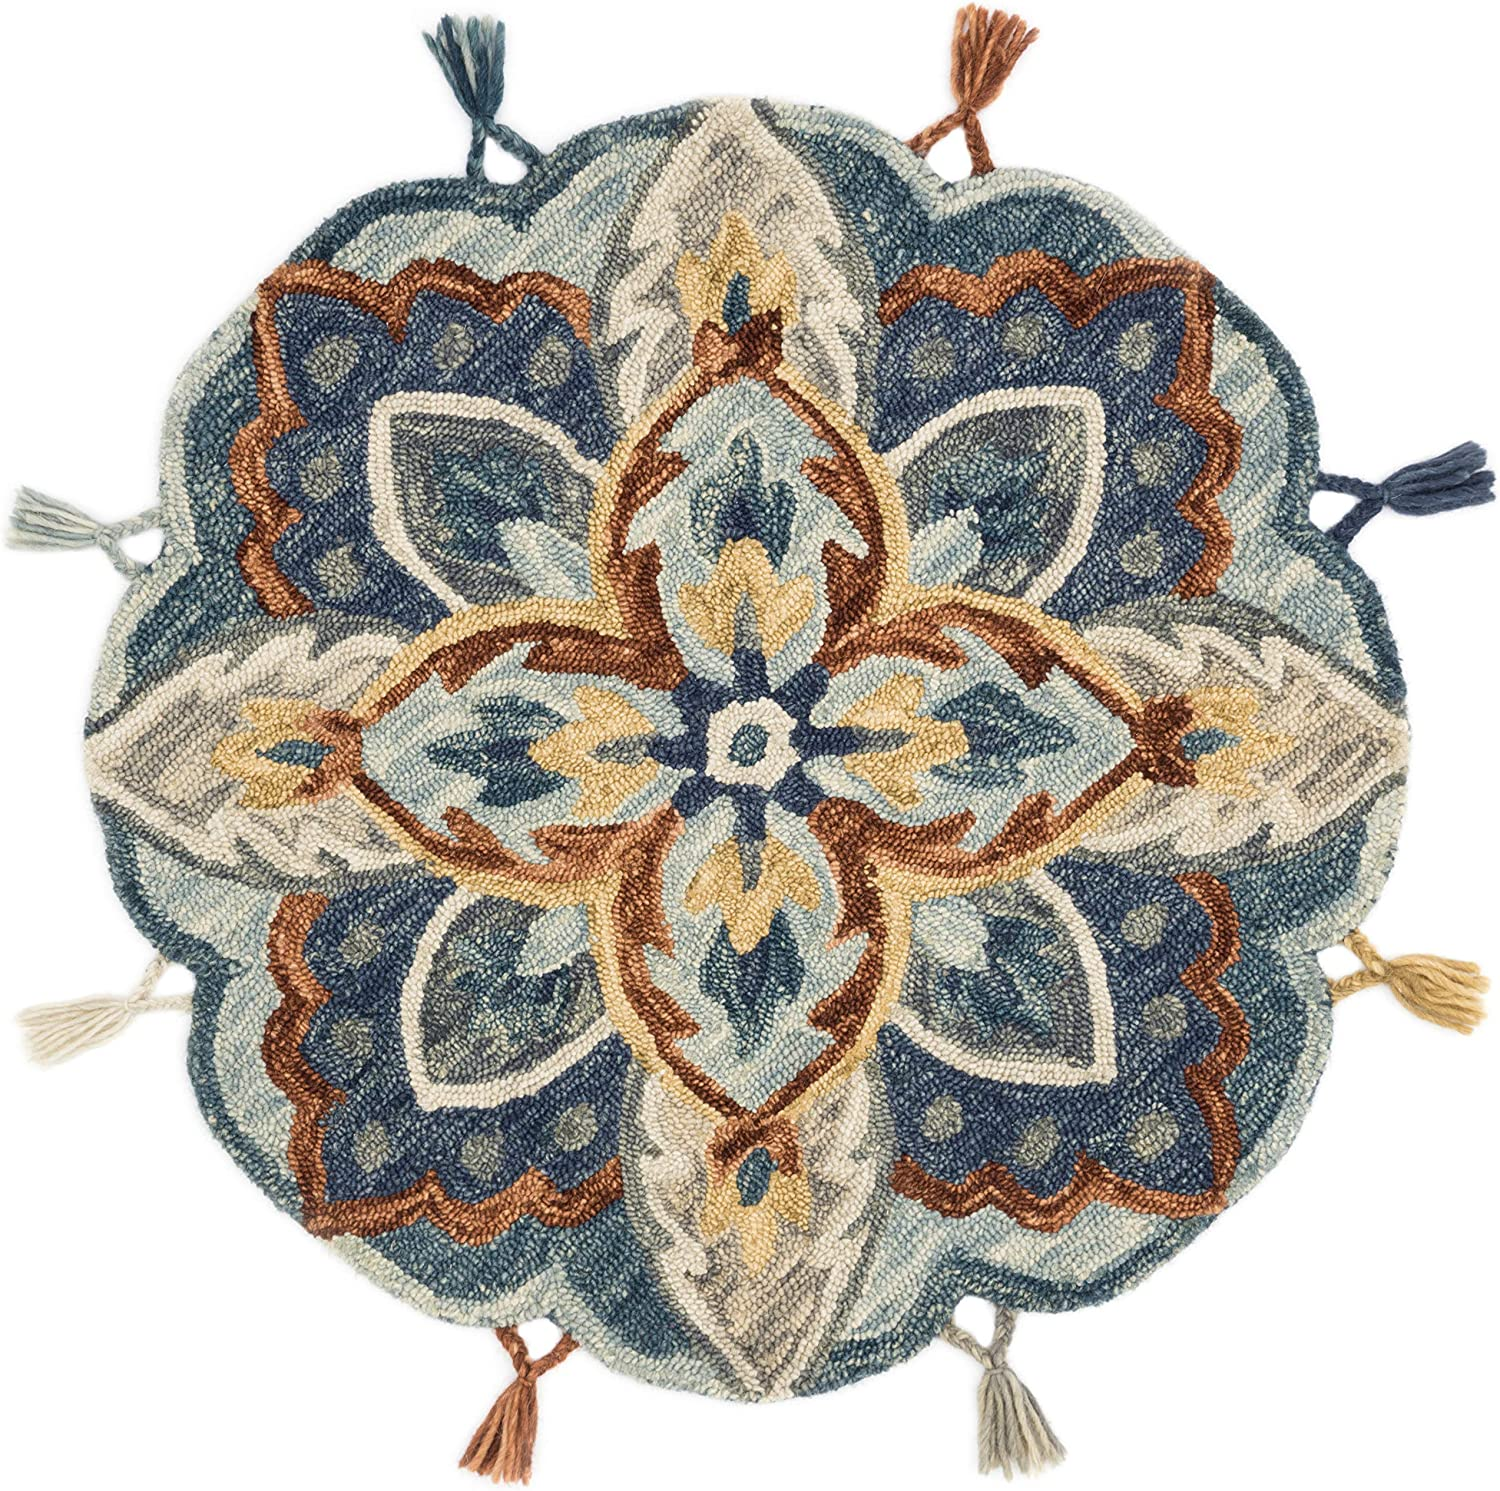 Loloi Remy Collection Round Accent Wool Area Rug, 3'x3', Blue/Multi